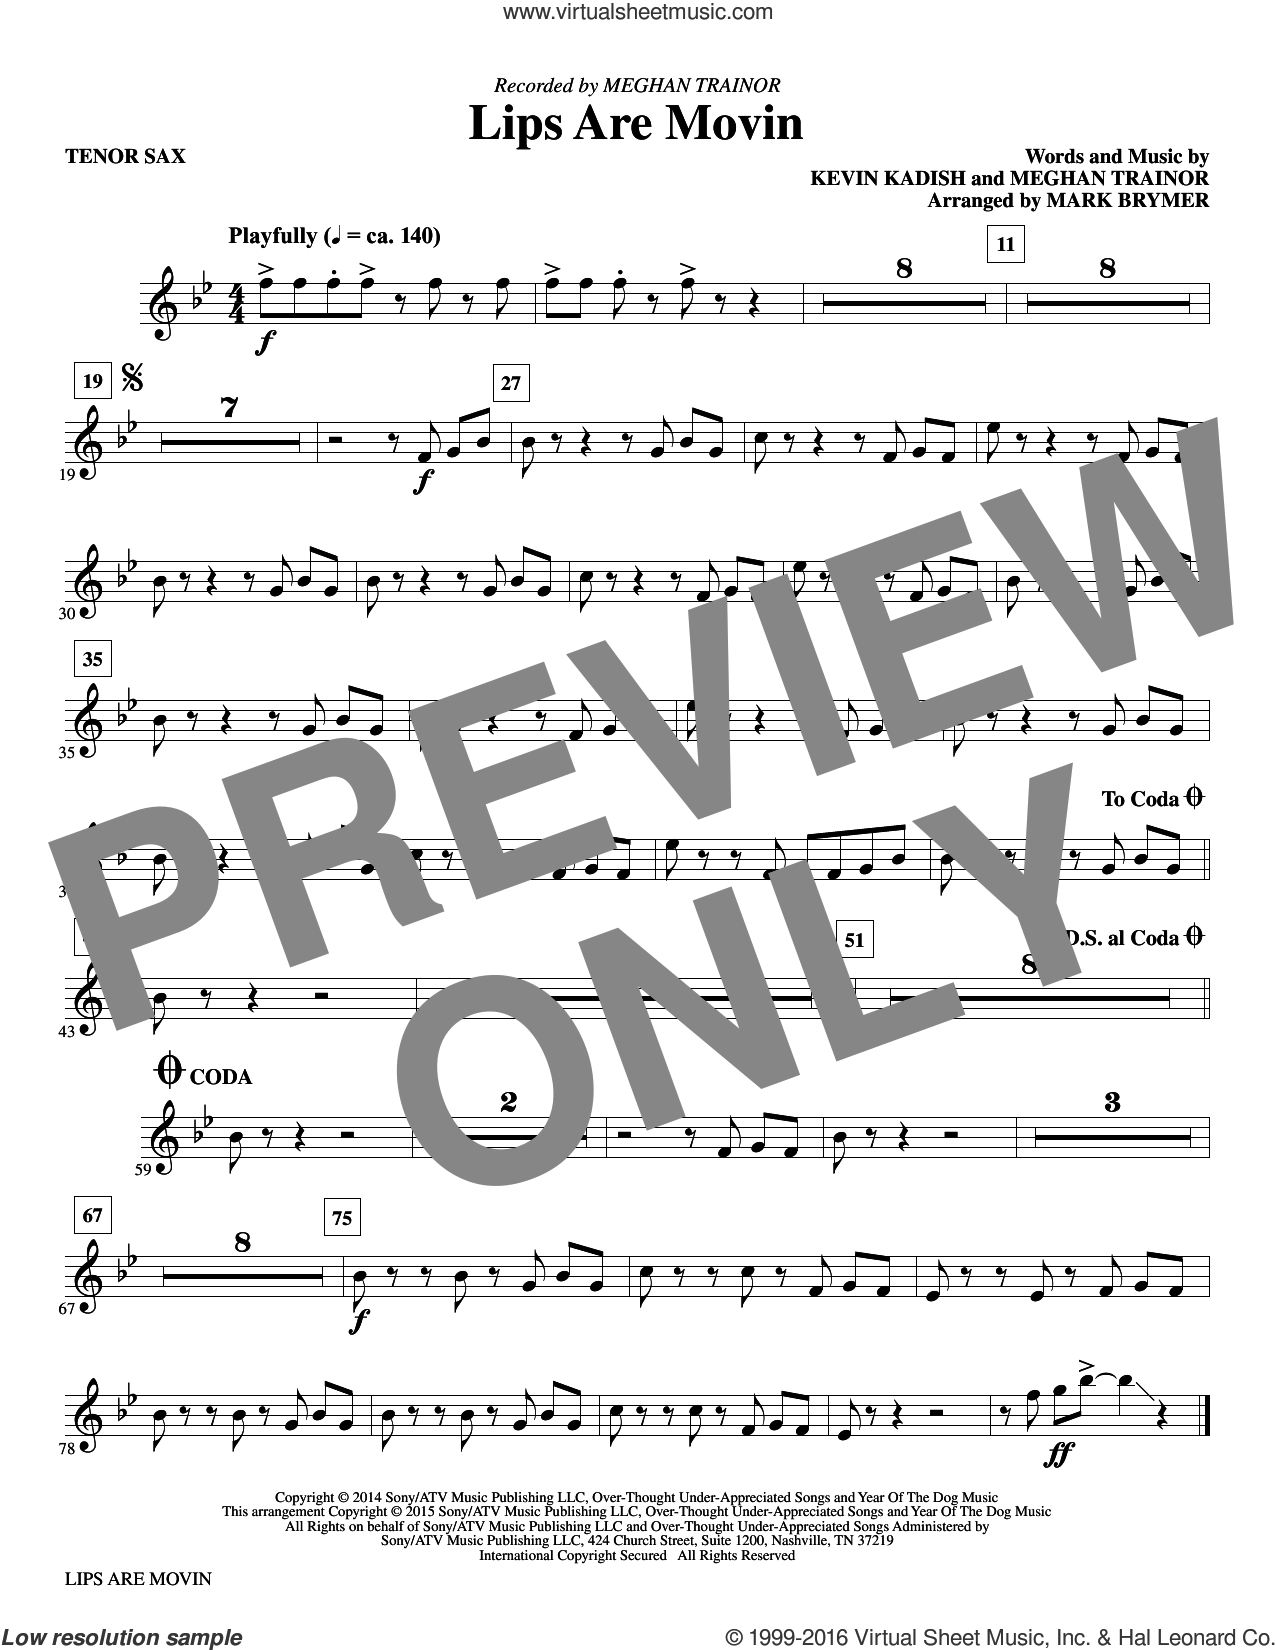 Lips Are Movin (COMPLETE) sheet music for orchestra by Mark Brymer, Kevin Kadish and Meghan Trainor, intermediate. Score Image Preview.